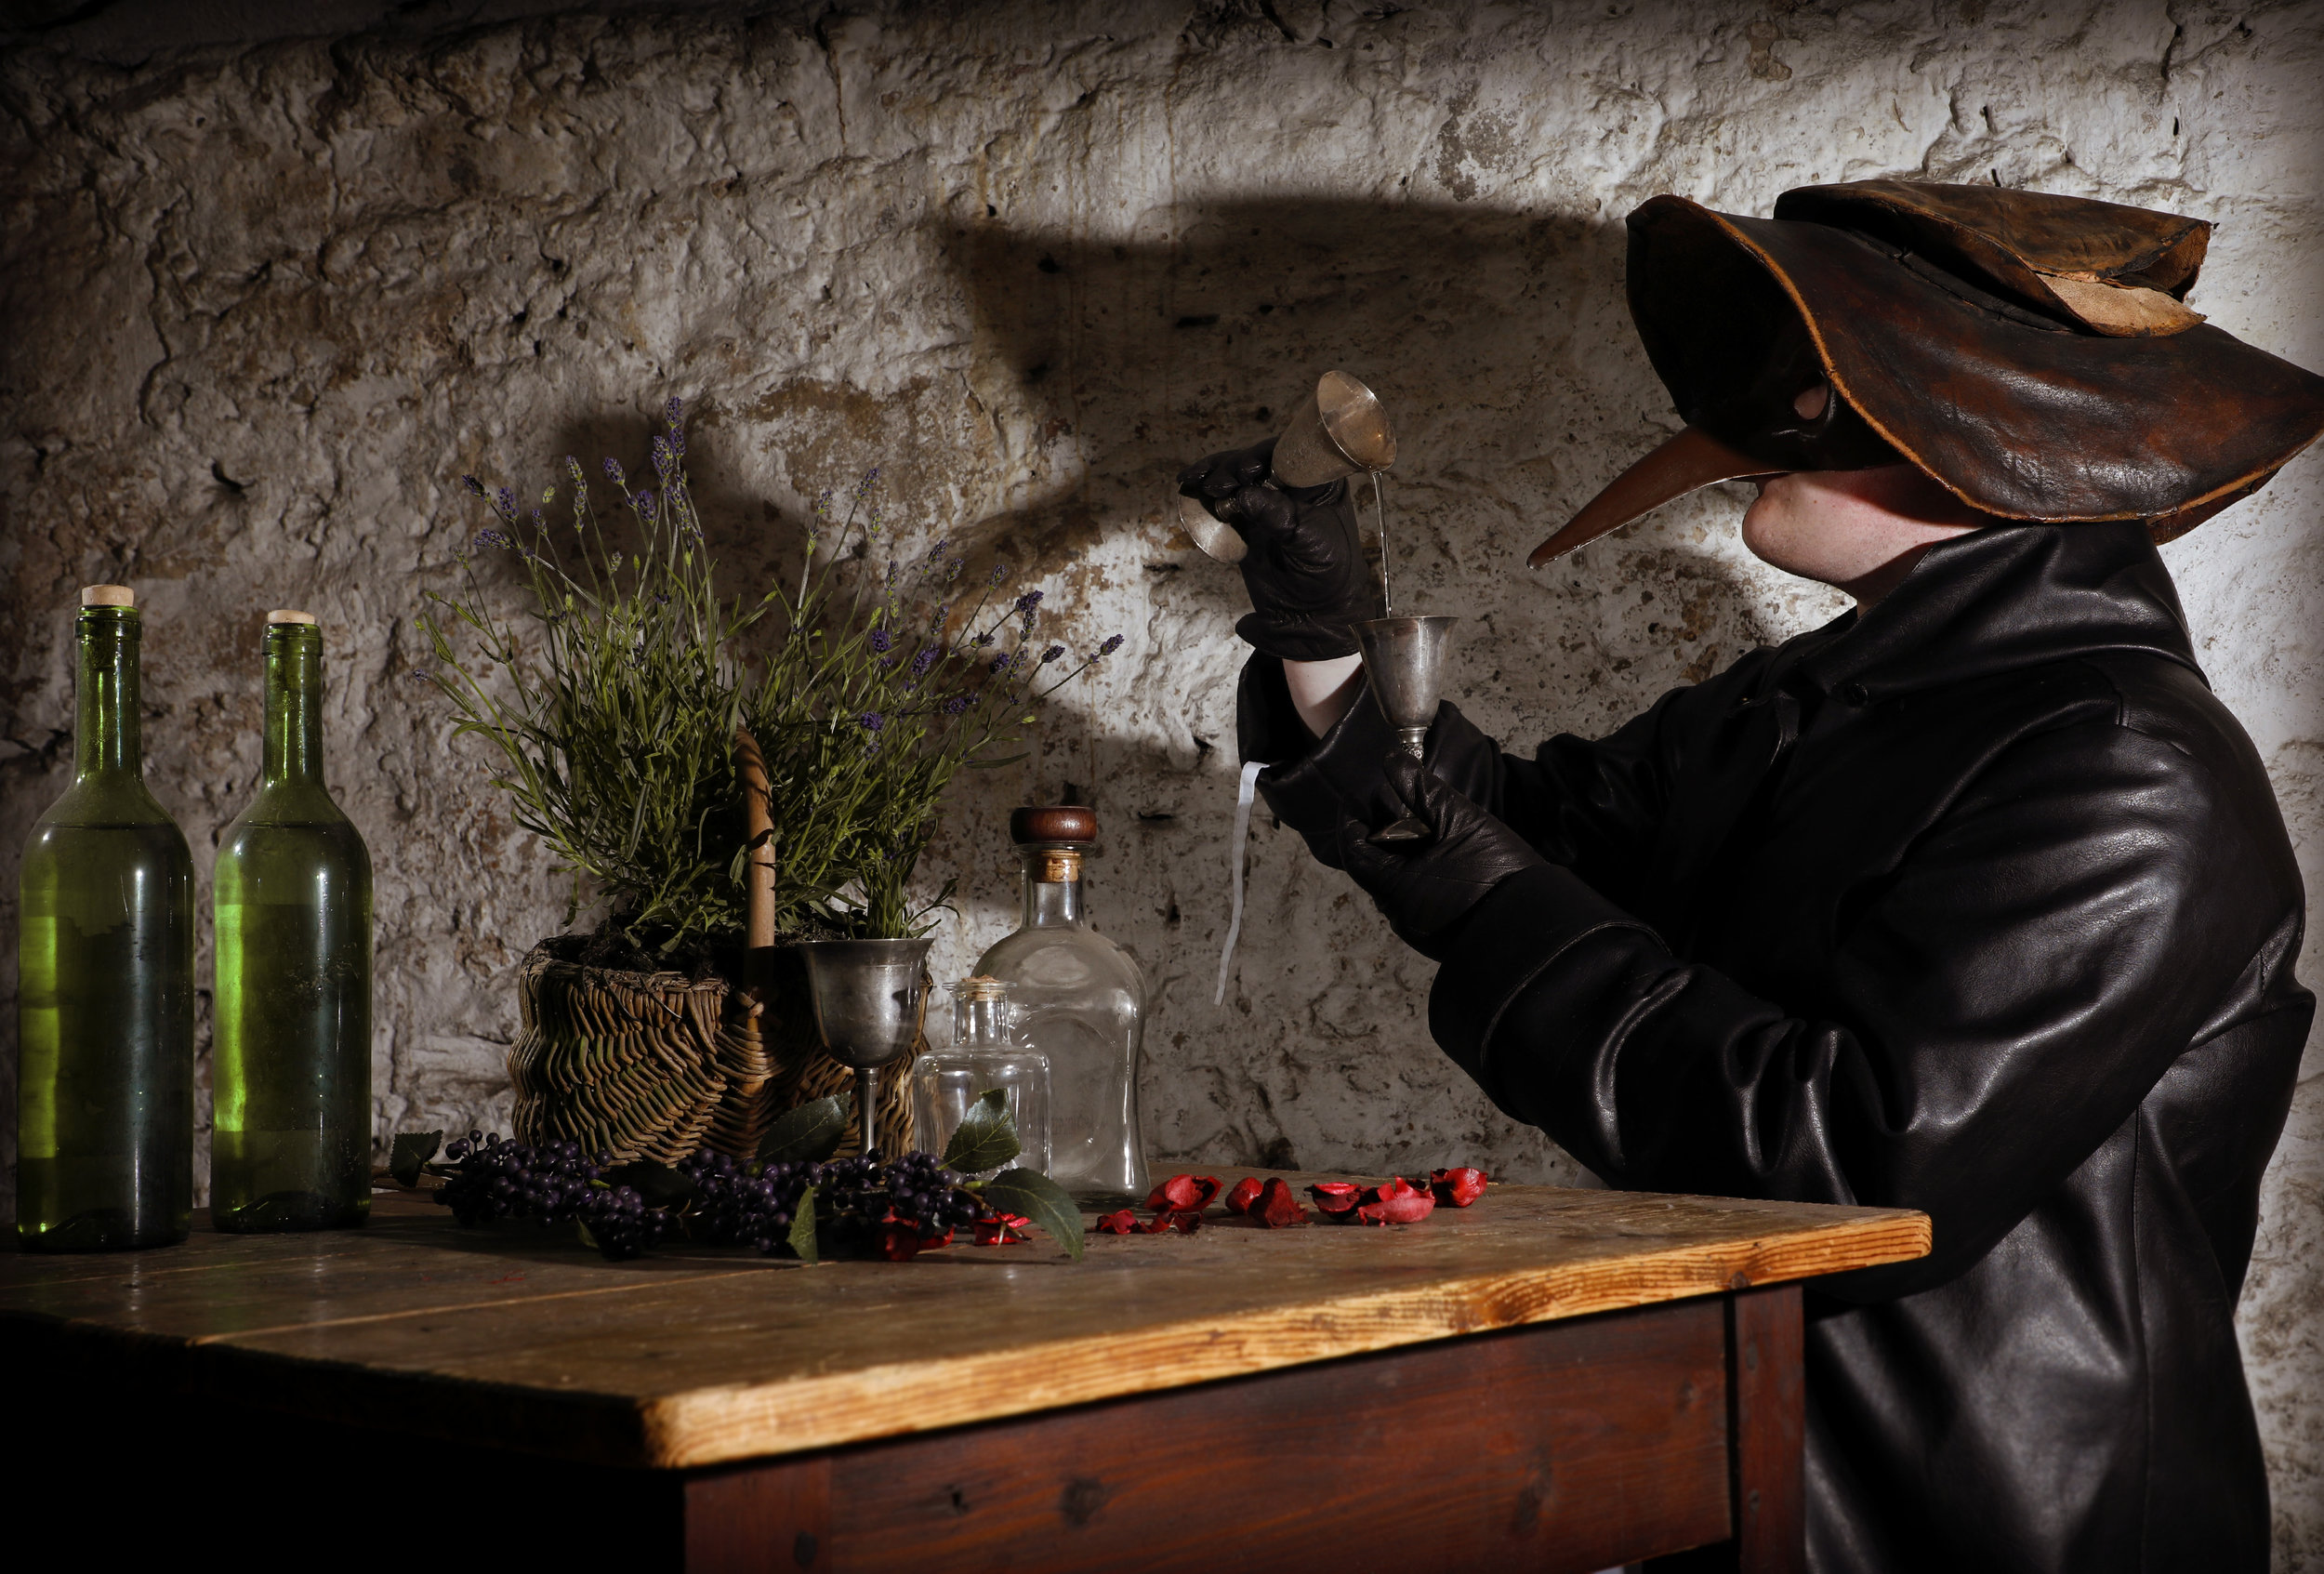 The-Real-Mary-Kings-Close-Old-Curiosity-Gin-tour_-Plague-Doctor-Mask-with-making-gin.jpg